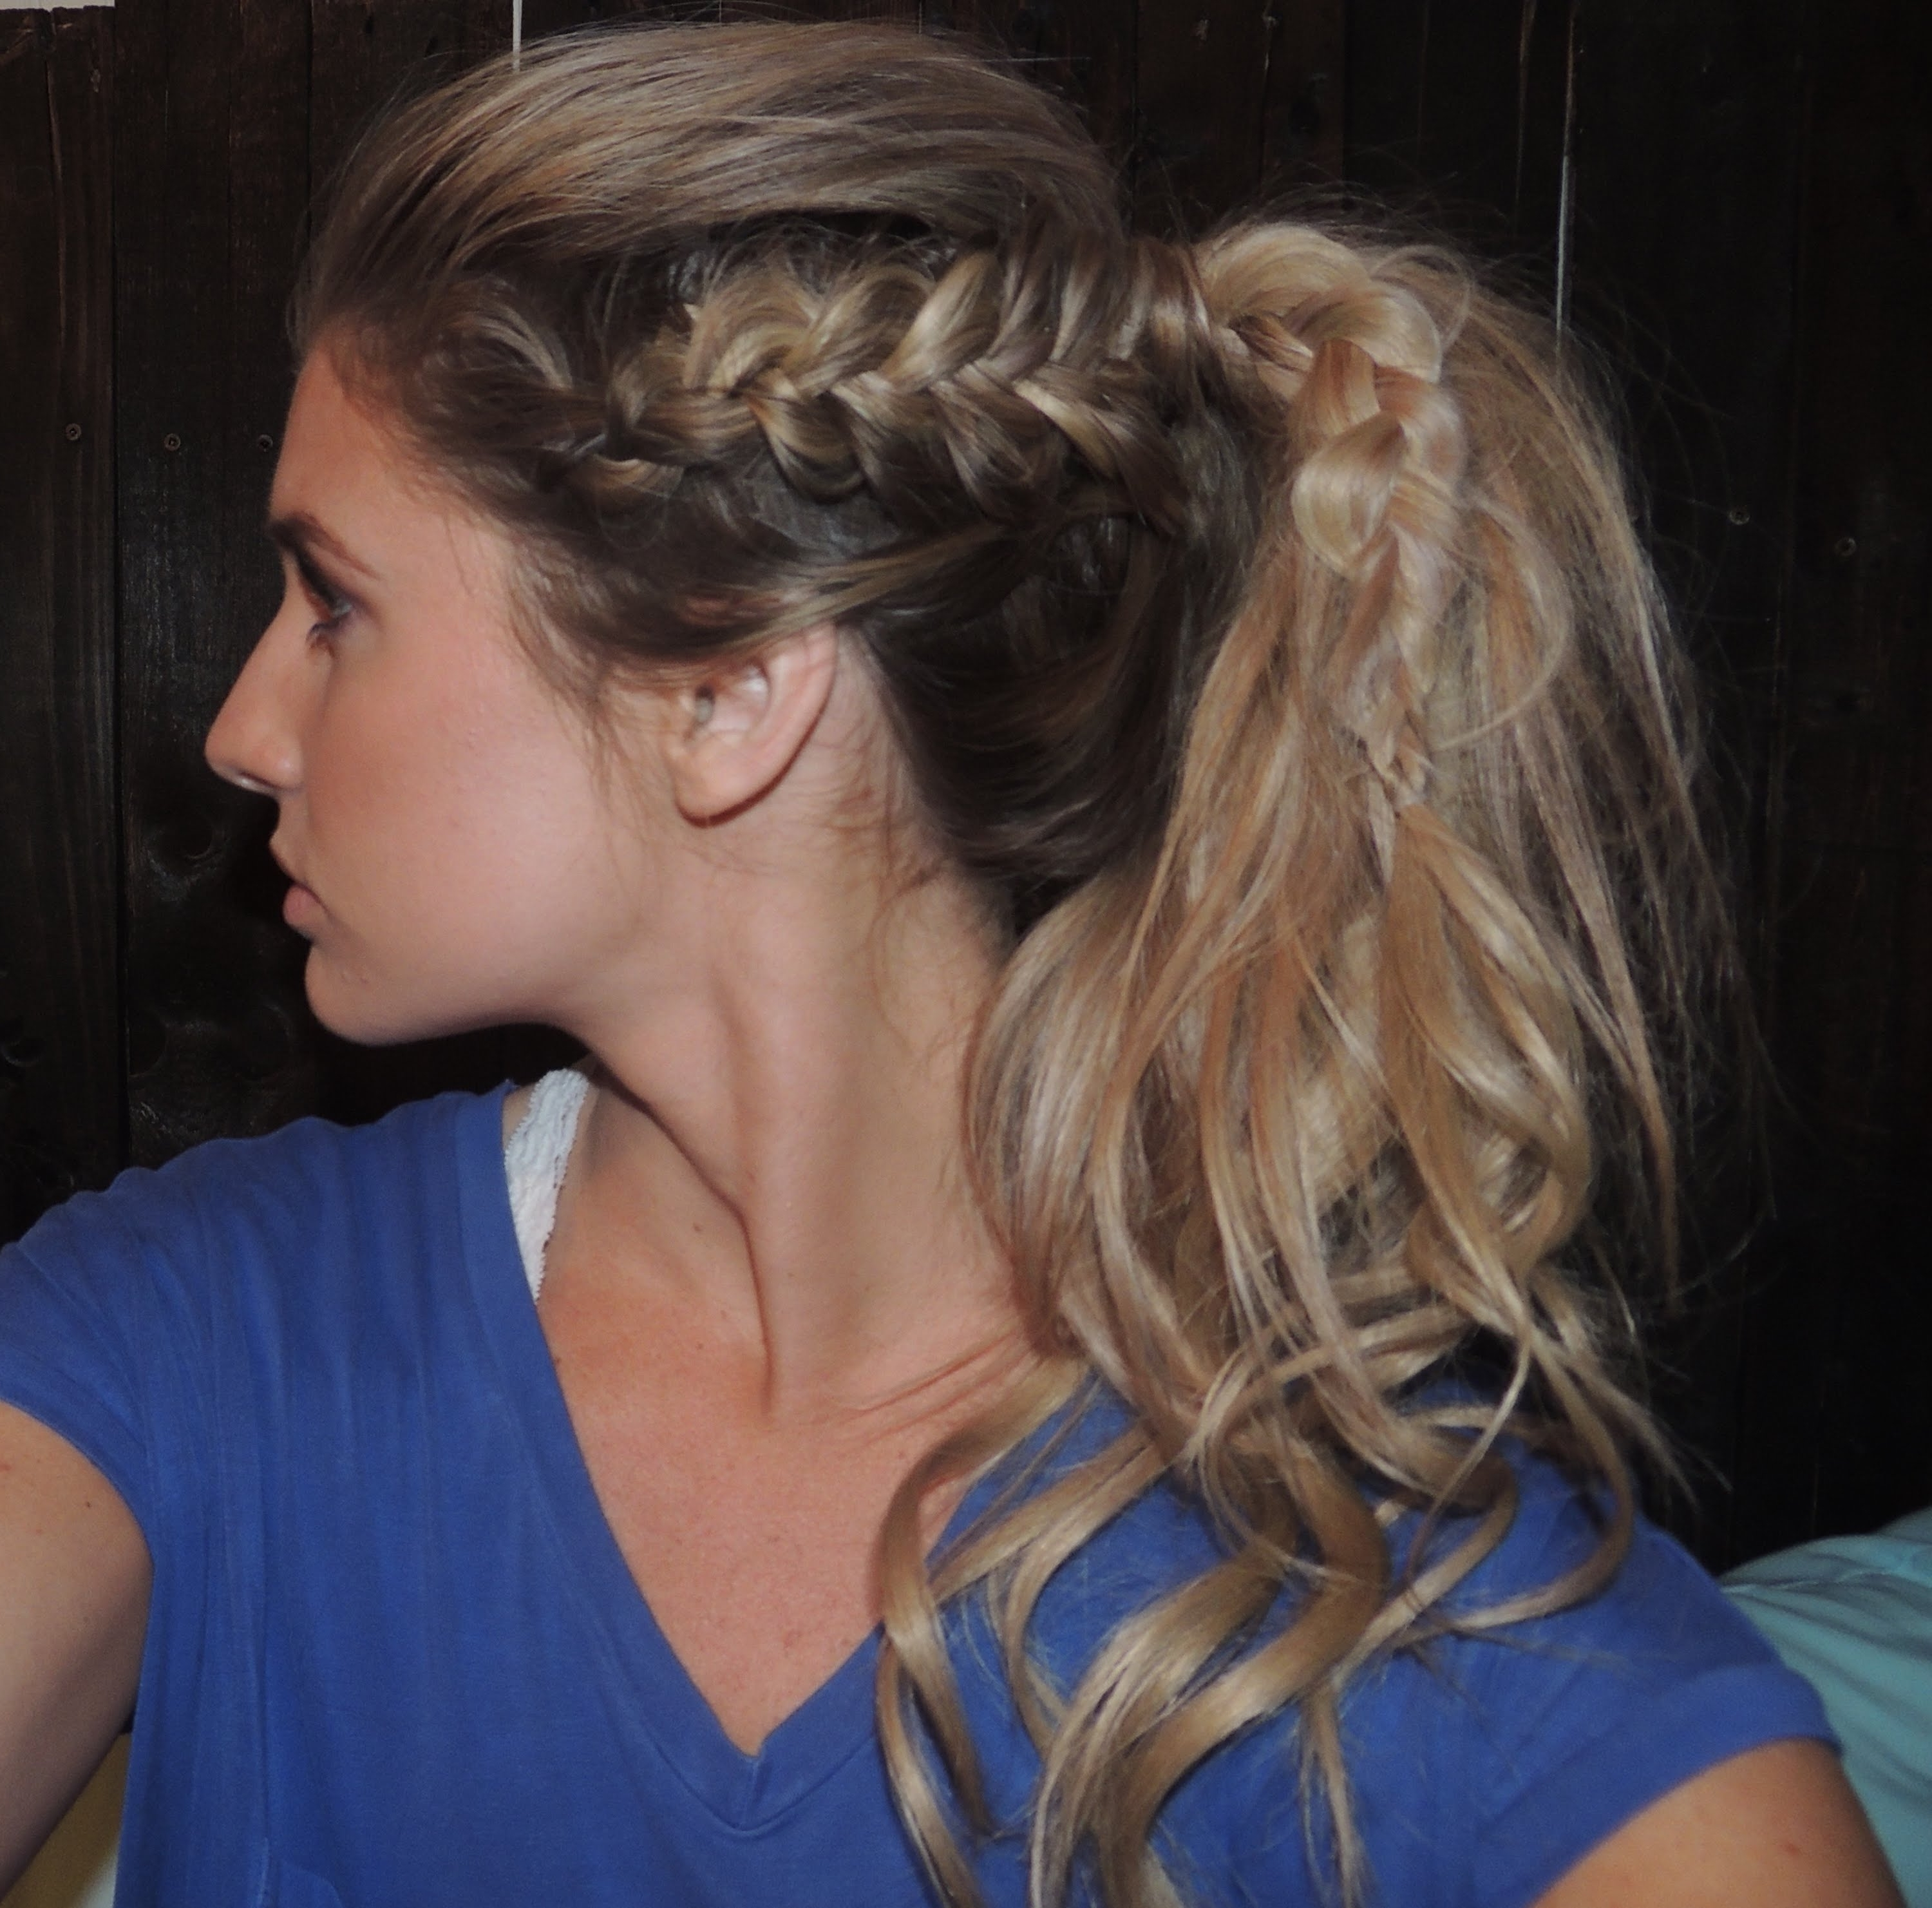 How To Tutorial On Side Dutch Braids To A Ponytail – Youtube Throughout Recent Dutch Braid Pony Hairstyles (View 9 of 20)